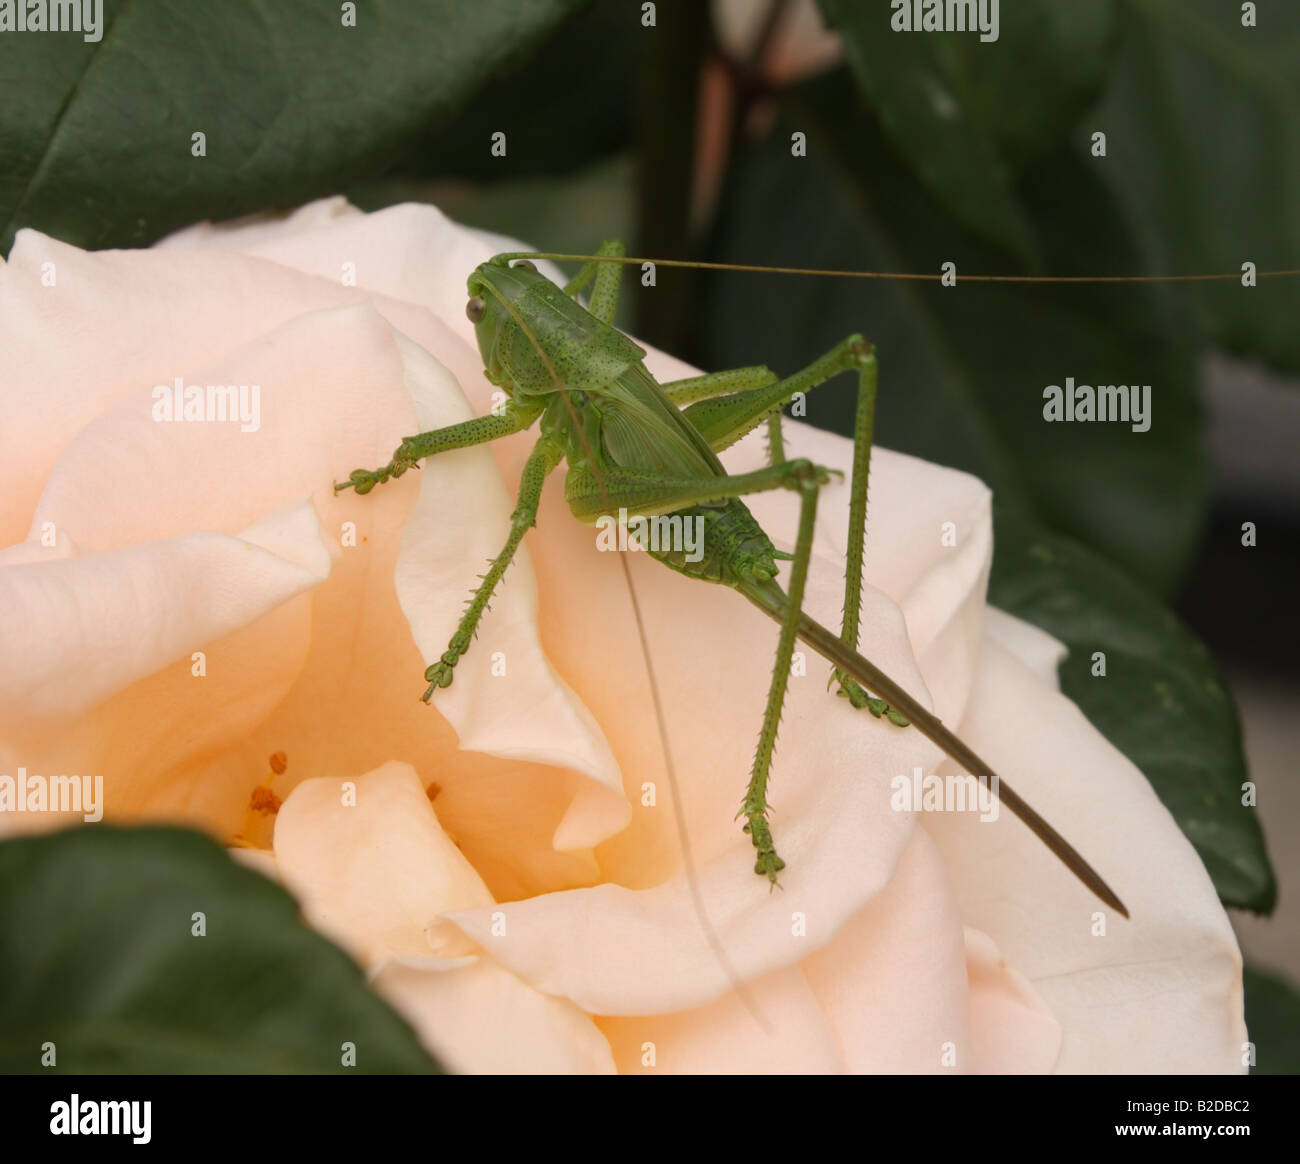 Grasshopper and rose - Stock Image